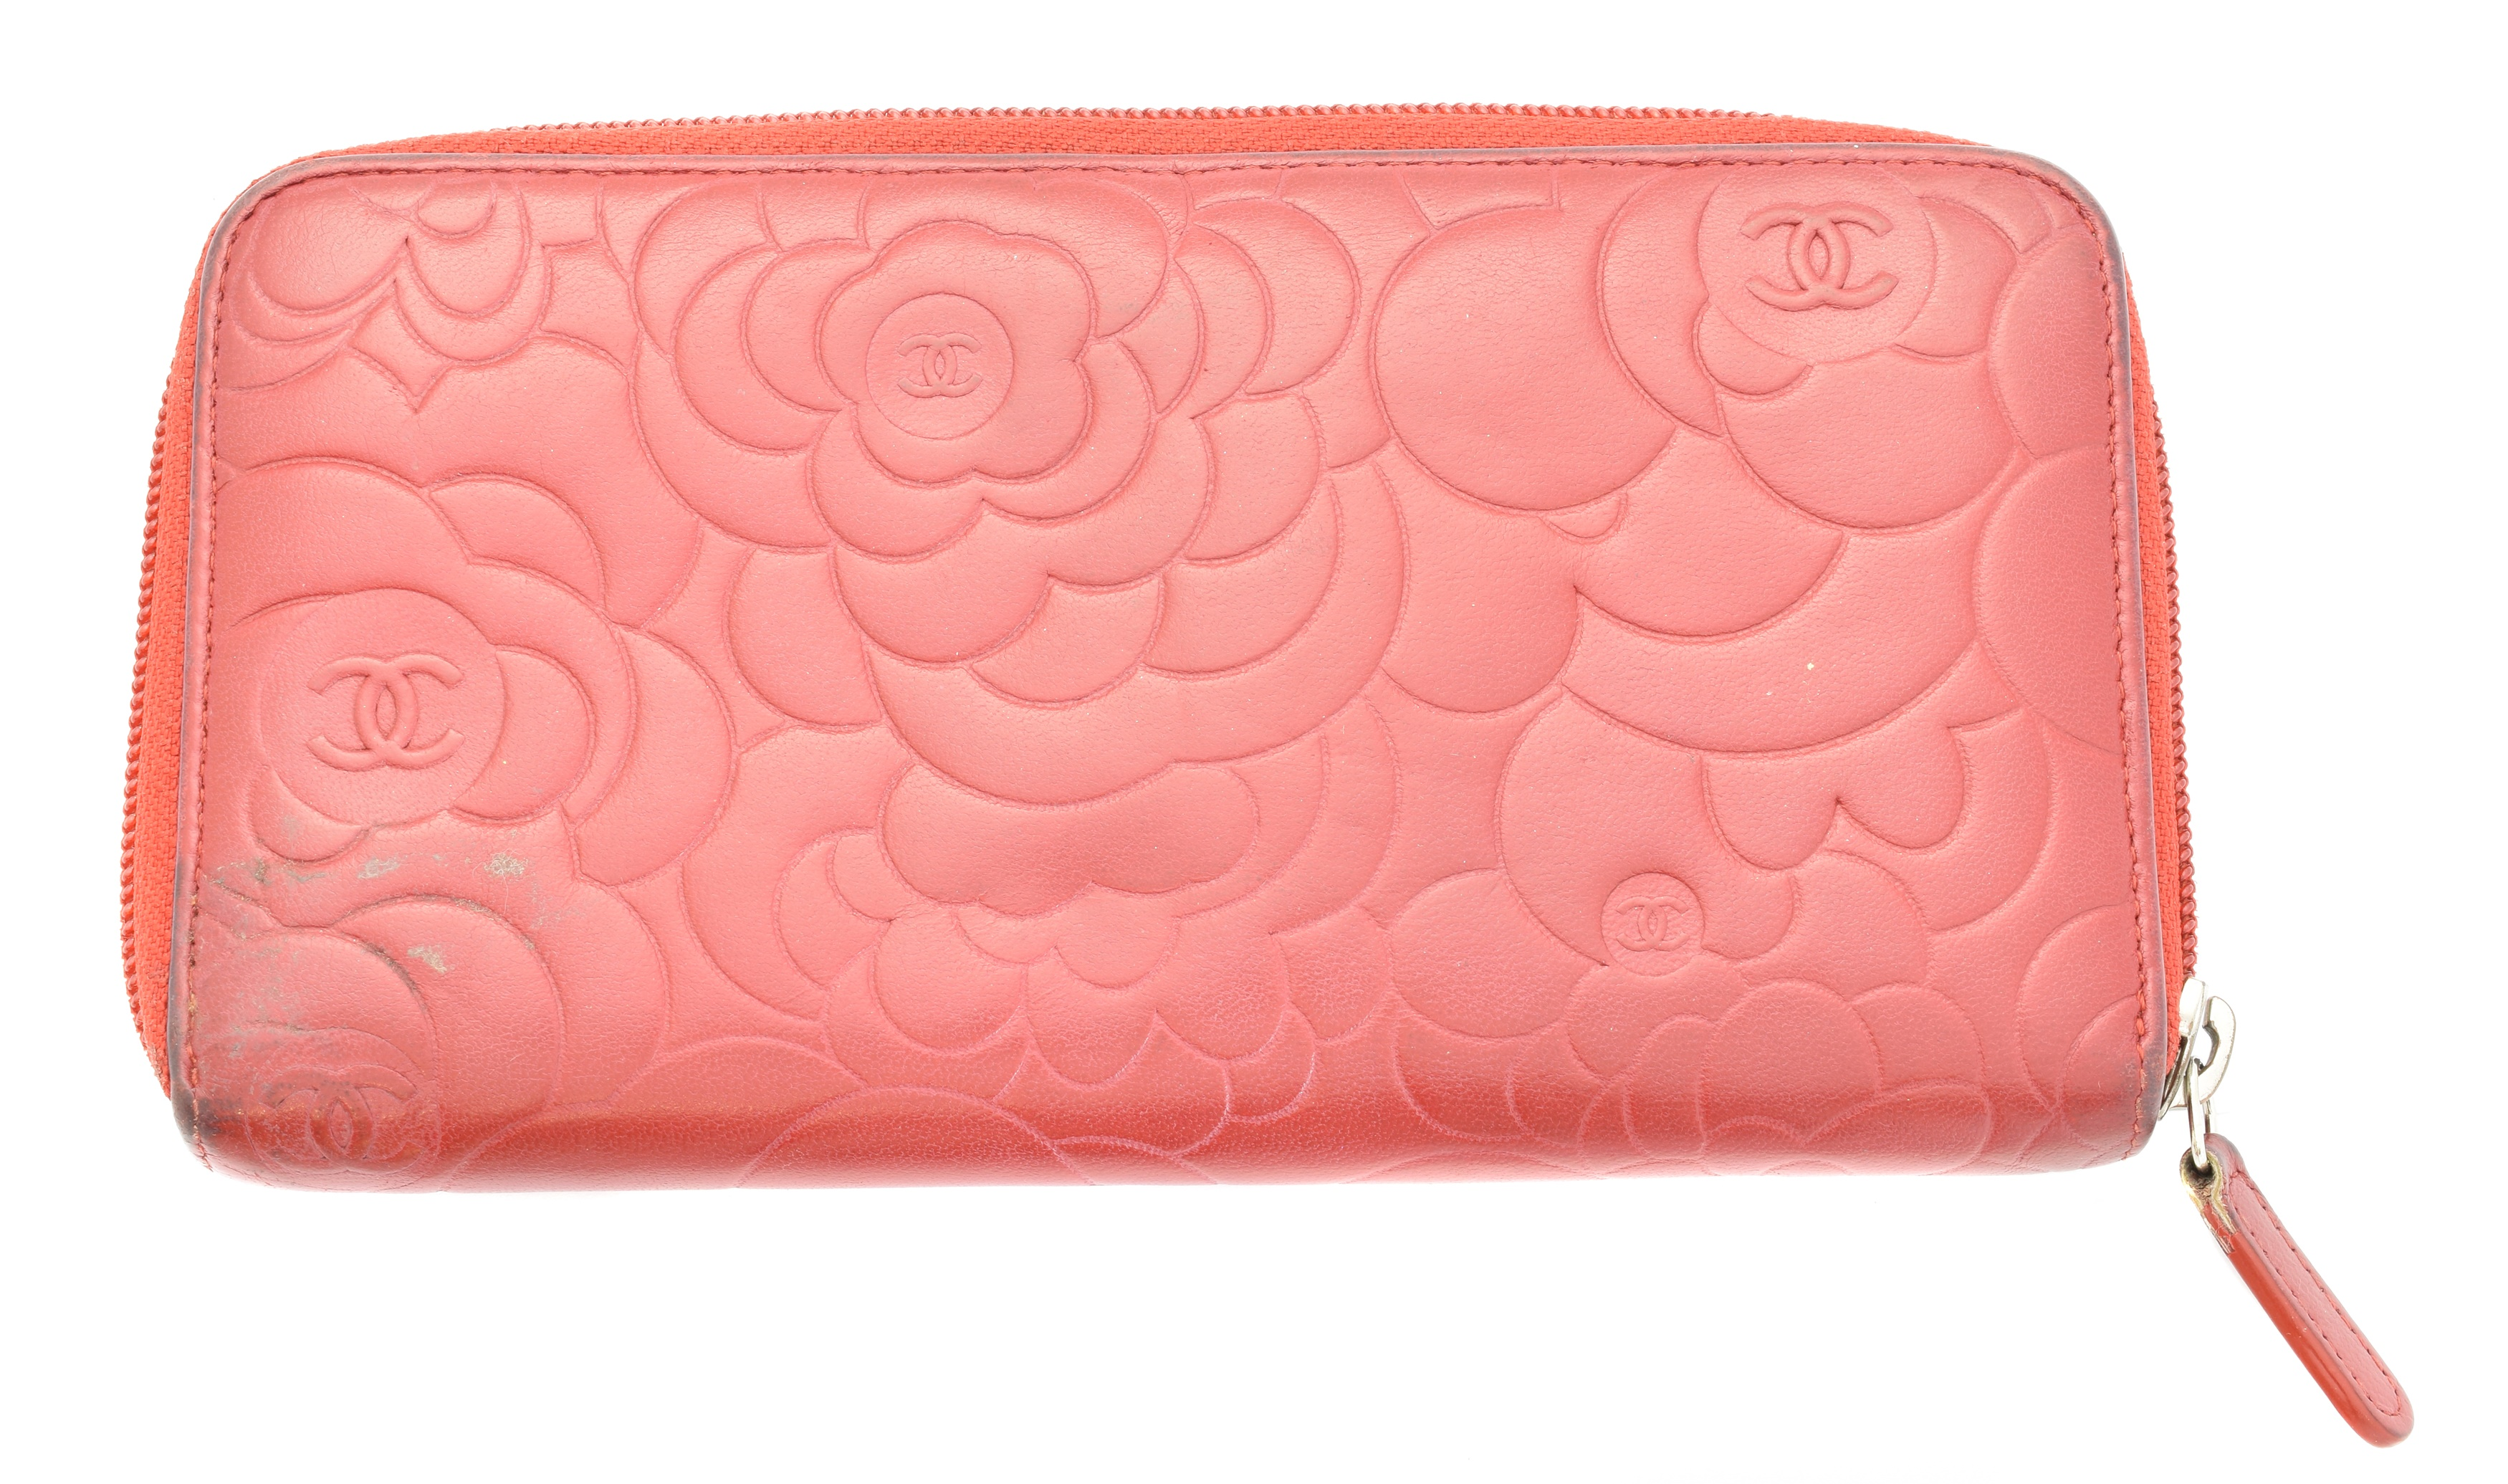 A Chanel Floral Embossed Zip Around Wallet, - Image 2 of 2